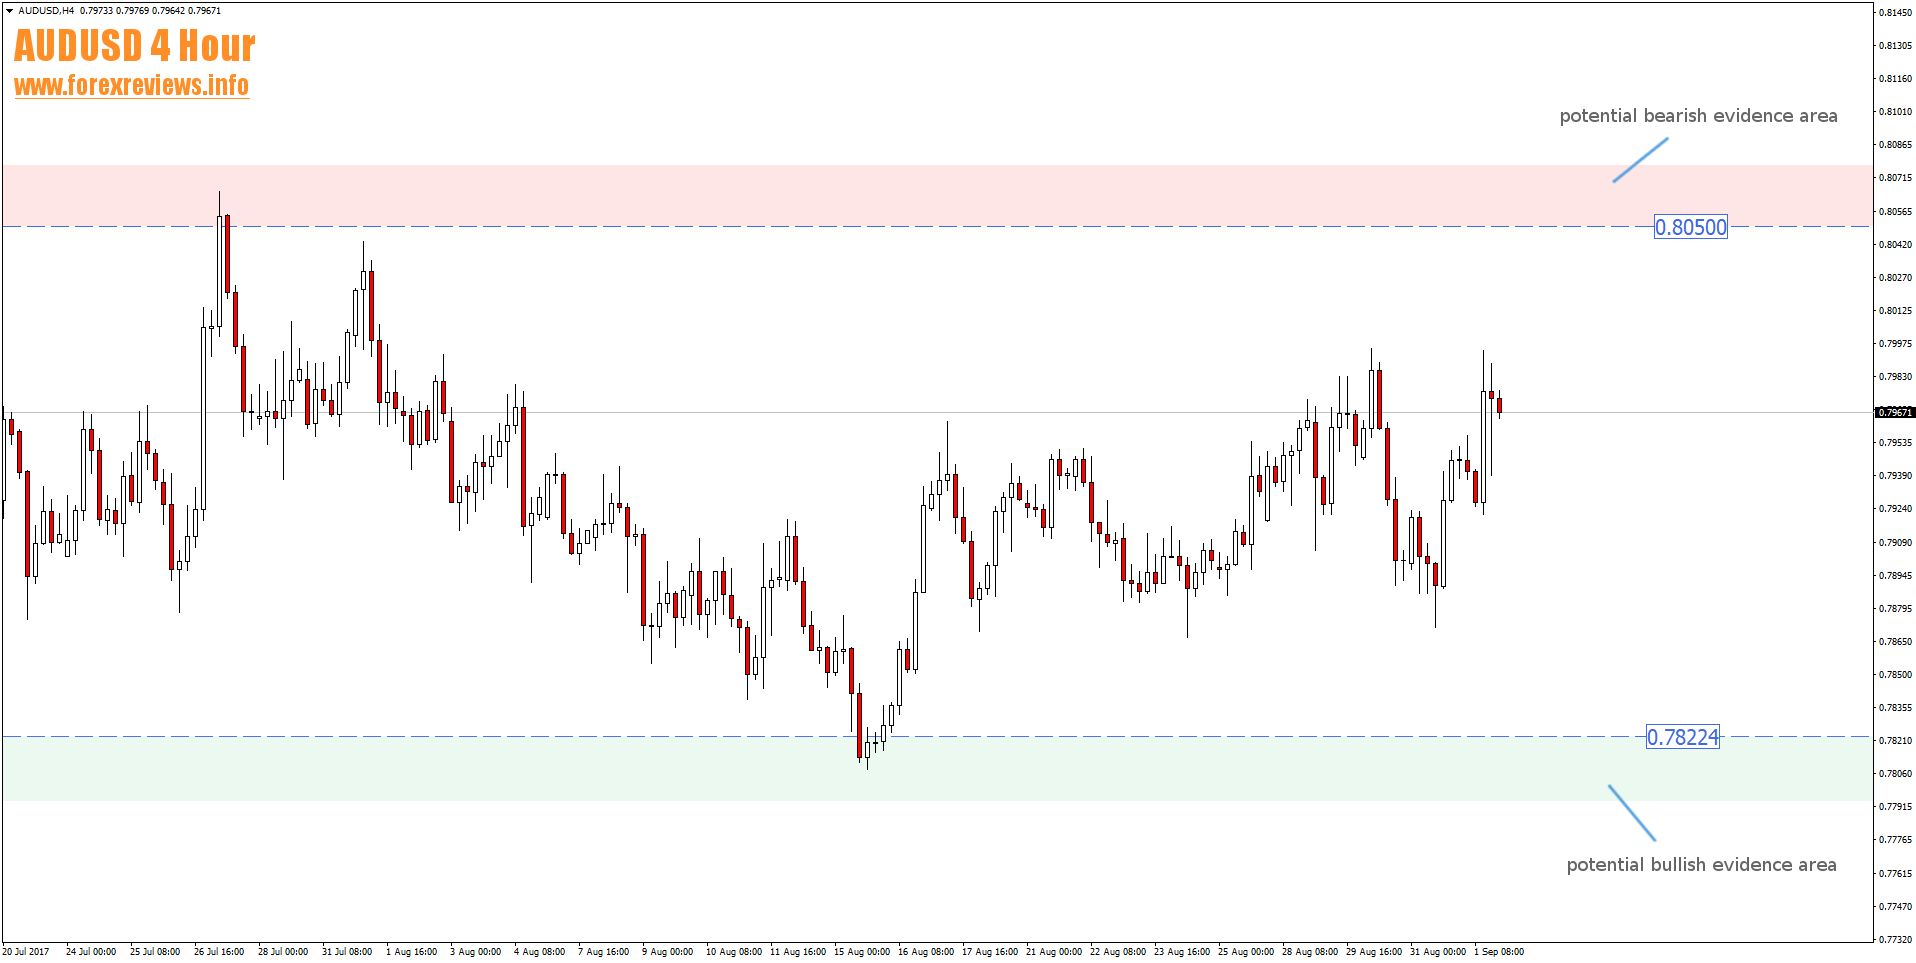 audusd 4 hour trading areas 4th to 8th of september